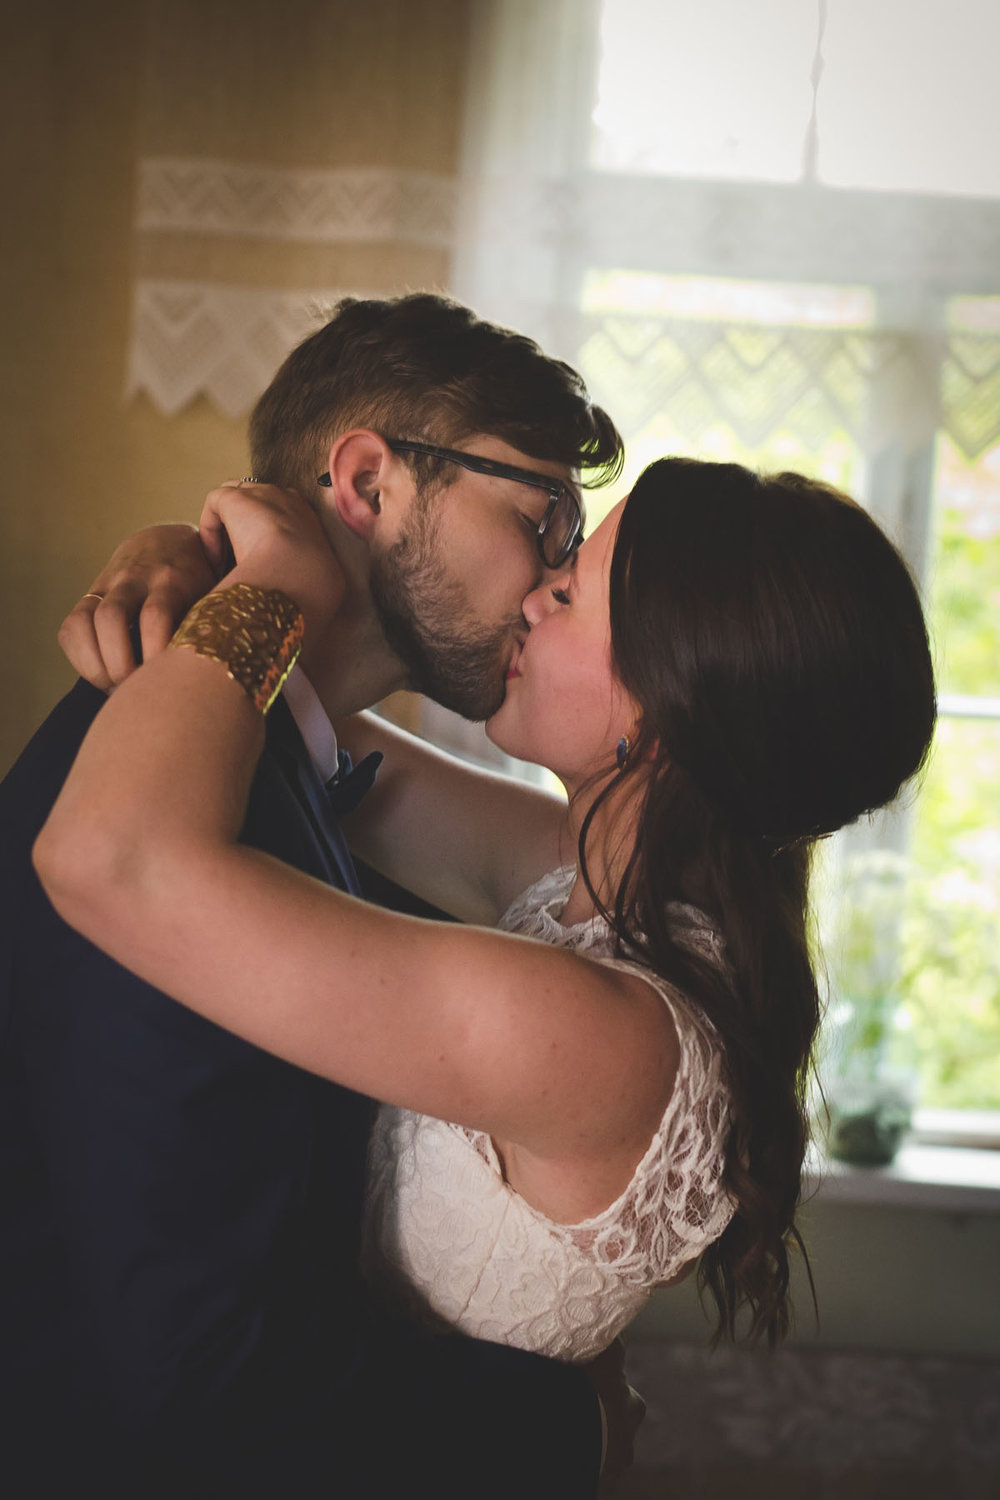 wedding-photos-079-hipster-wedding.jpg